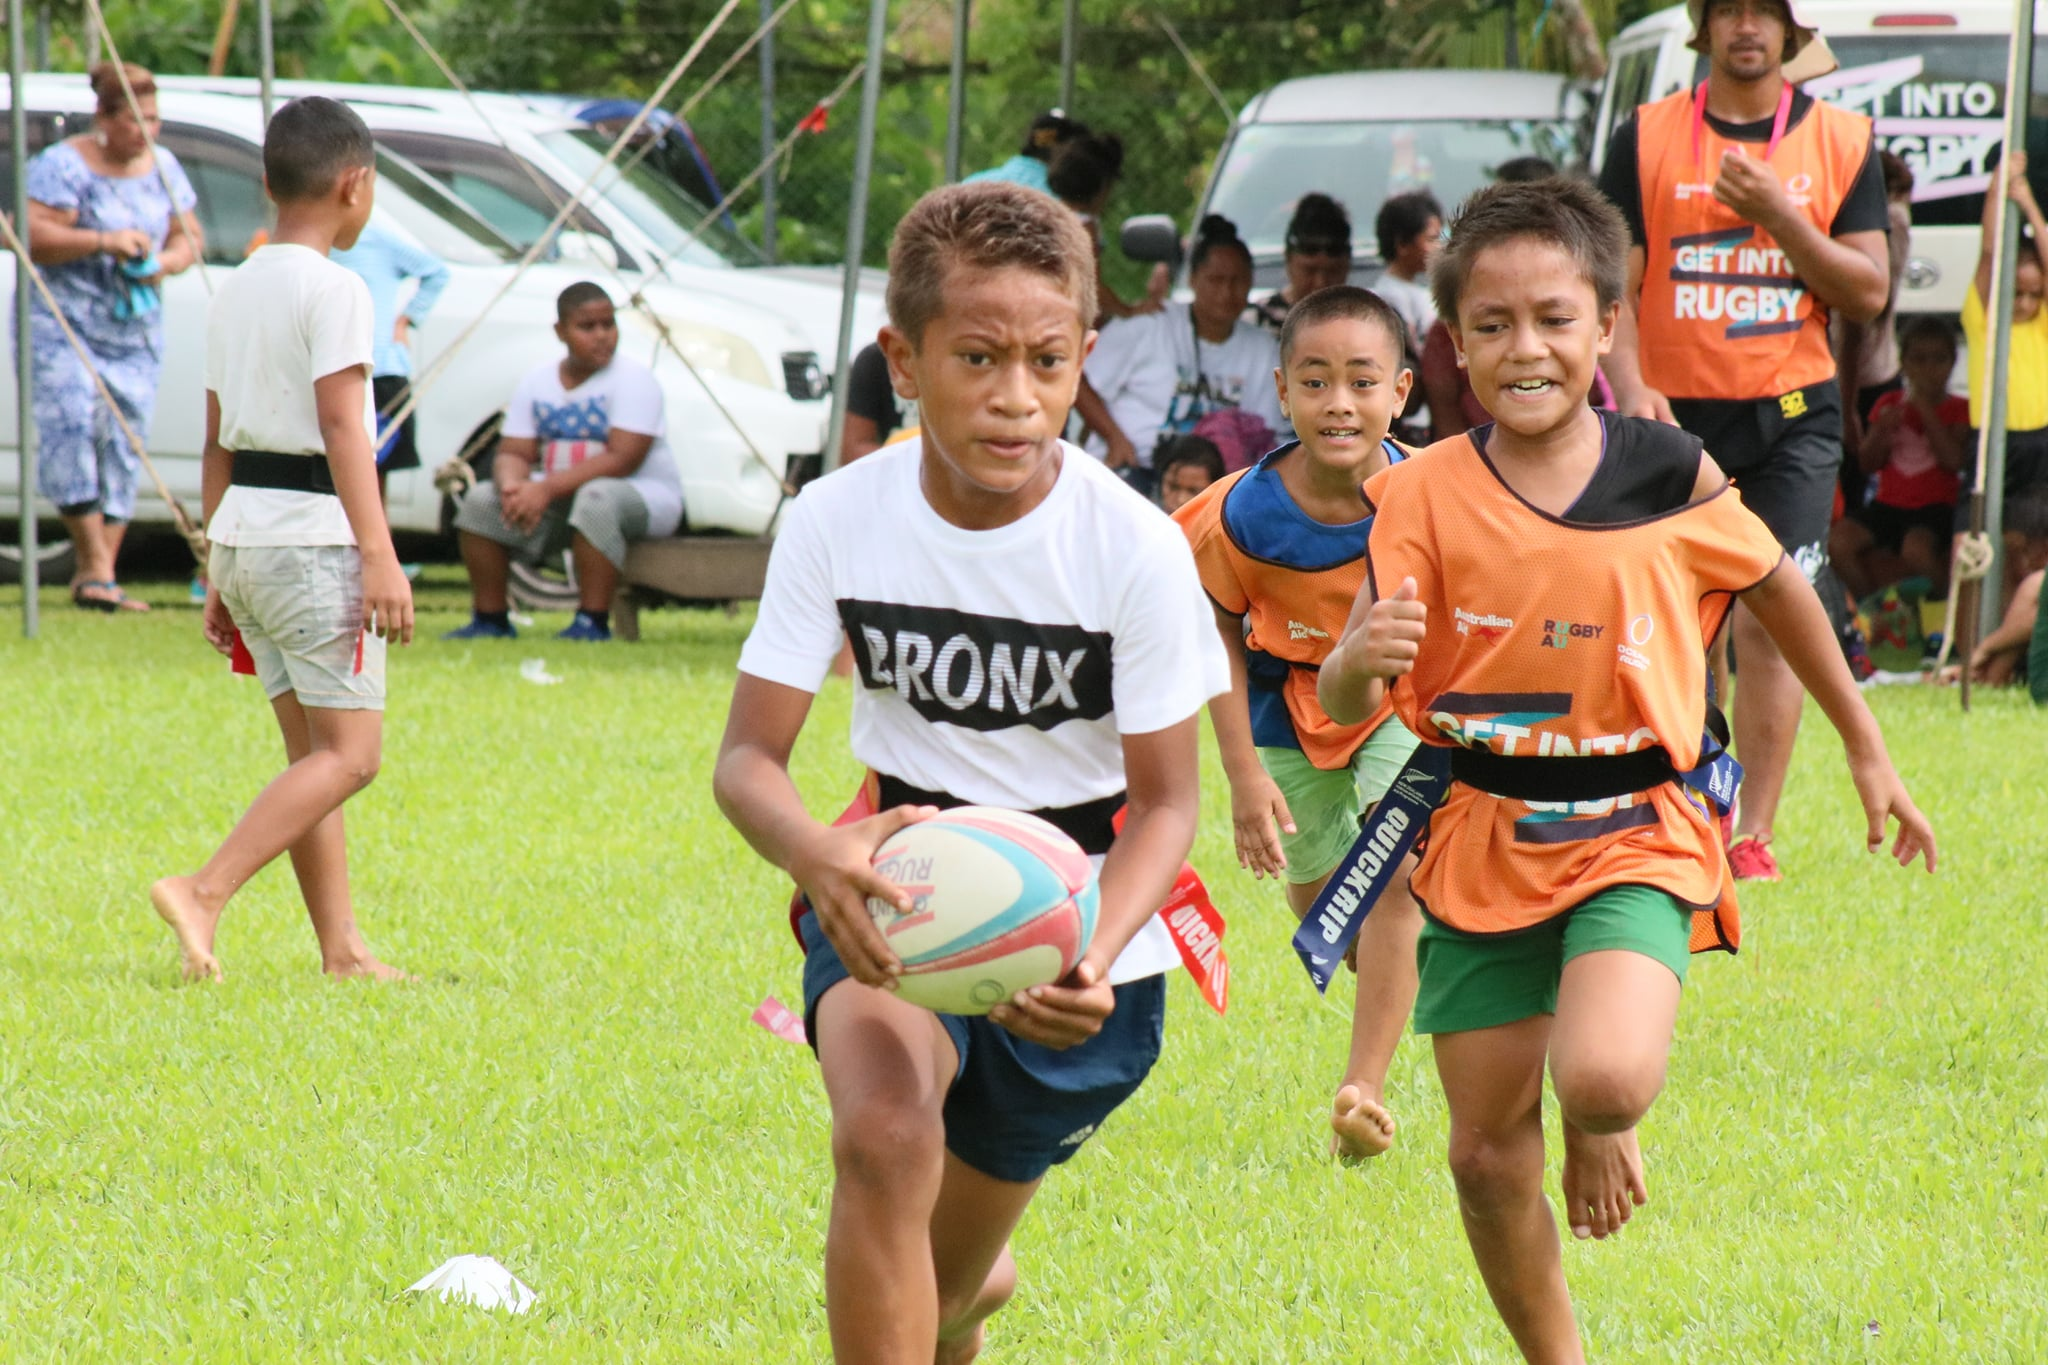 Faasaleleaga District Get Into Rugby Festival March 2021